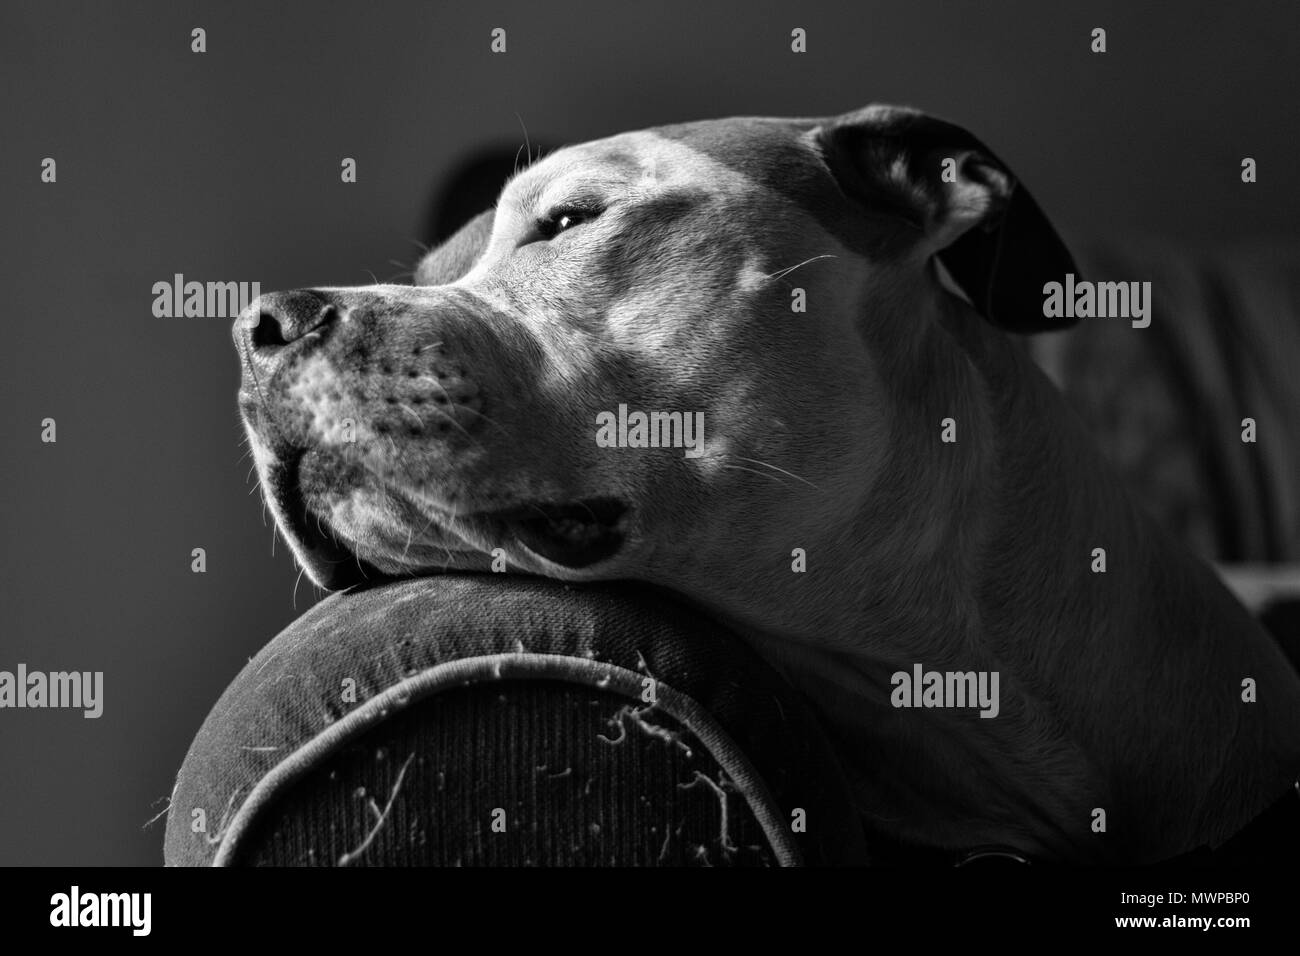 A dog (a mixed breed pit bull terrier) (Canis lupus familiaris) rests his head on the arm of a sofa, head in profile, looking noble - Stock Image